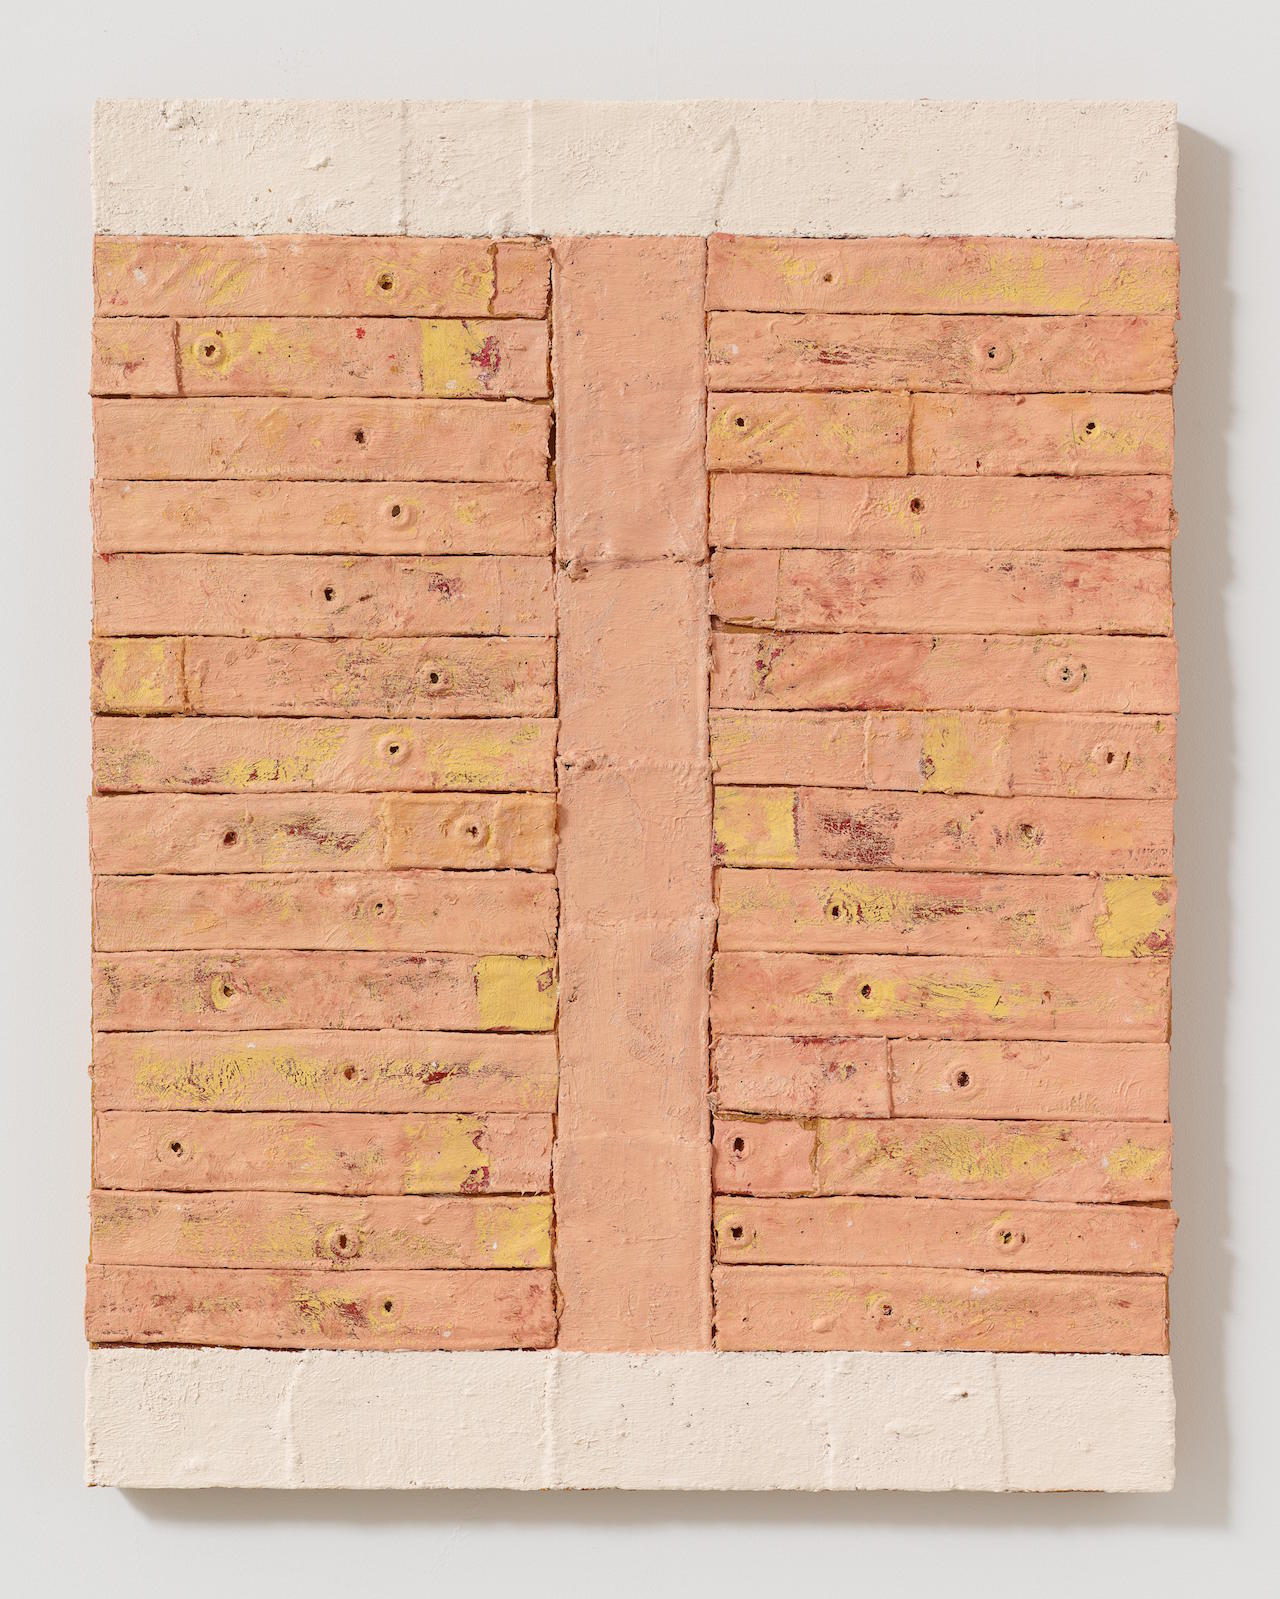 Harmony Hammond, Klee, 2015, oil and mixed media on canvas, 36.25 x 28.25 inches